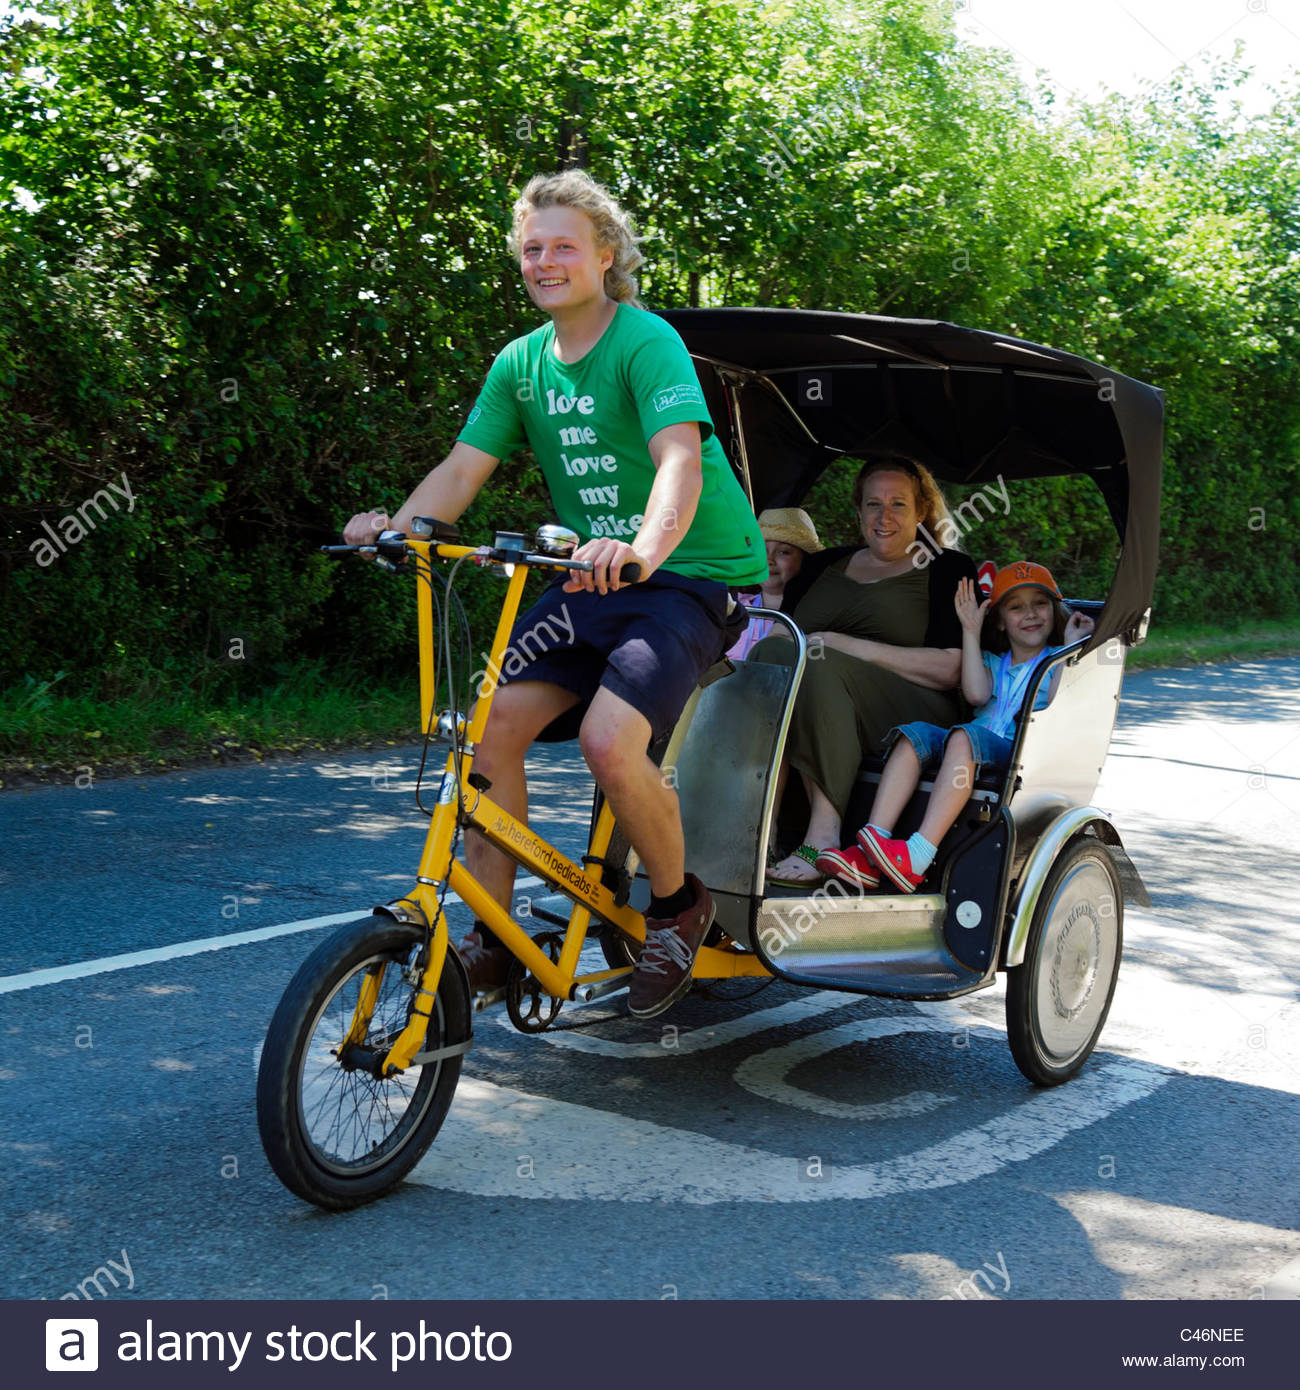 Hay on Wye, Wales, UK. Hay festival pedicab taking woman & children to town center. - Stock Image